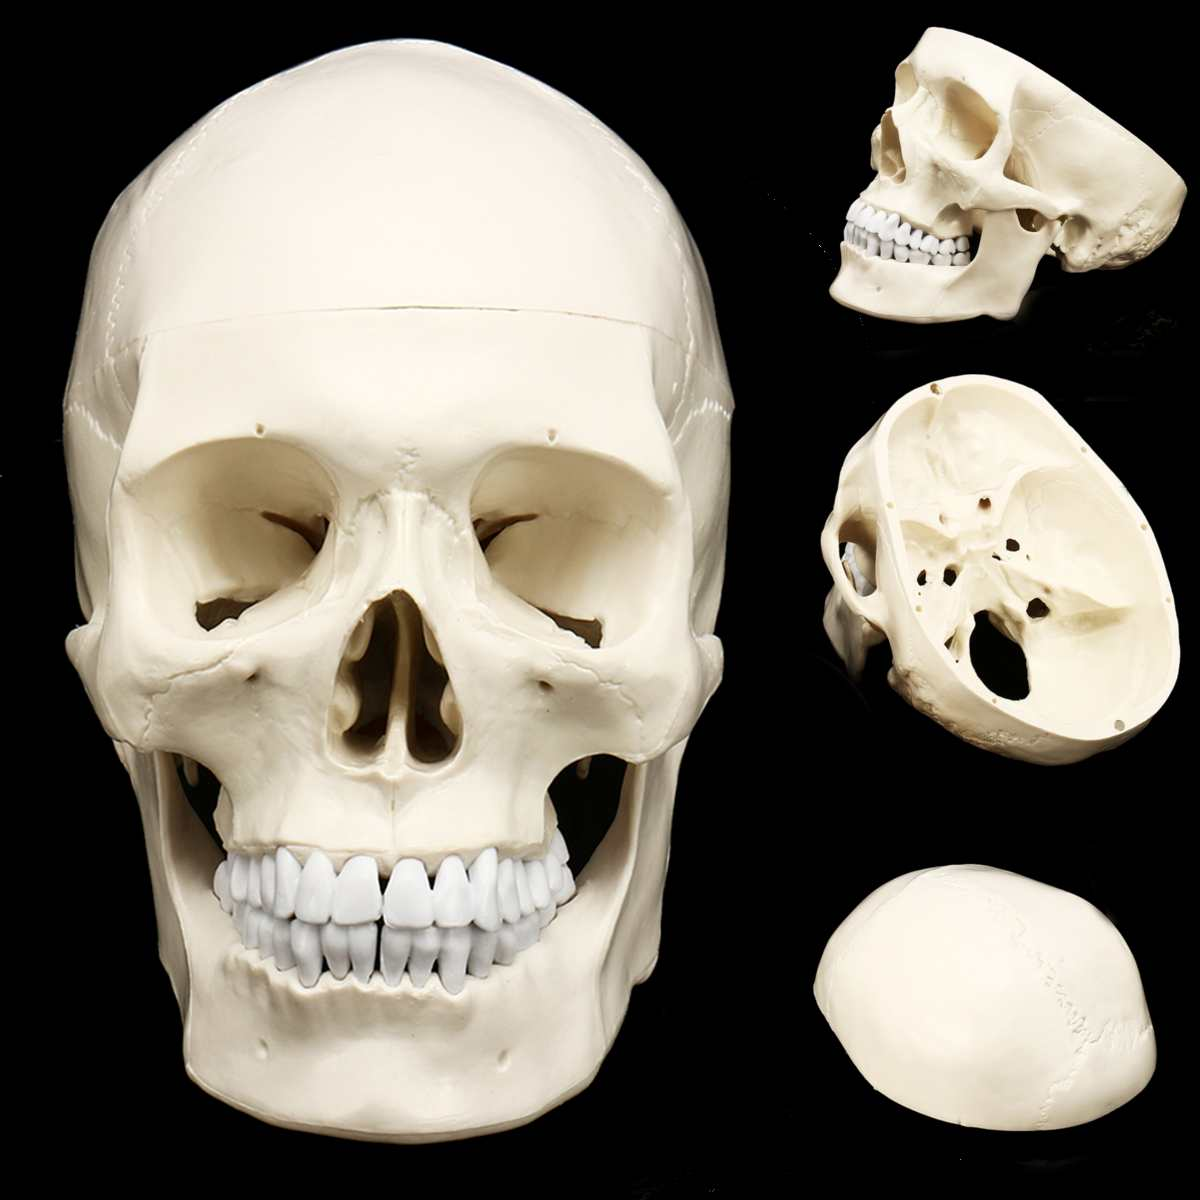 Skull Model of Human Anatomical Model Medicine Skull Human Anatomical Anatomy Head Studying Anatomy Teaching Supplies NewSkull Model of Human Anatomical Model Medicine Skull Human Anatomical Anatomy Head Studying Anatomy Teaching Supplies New